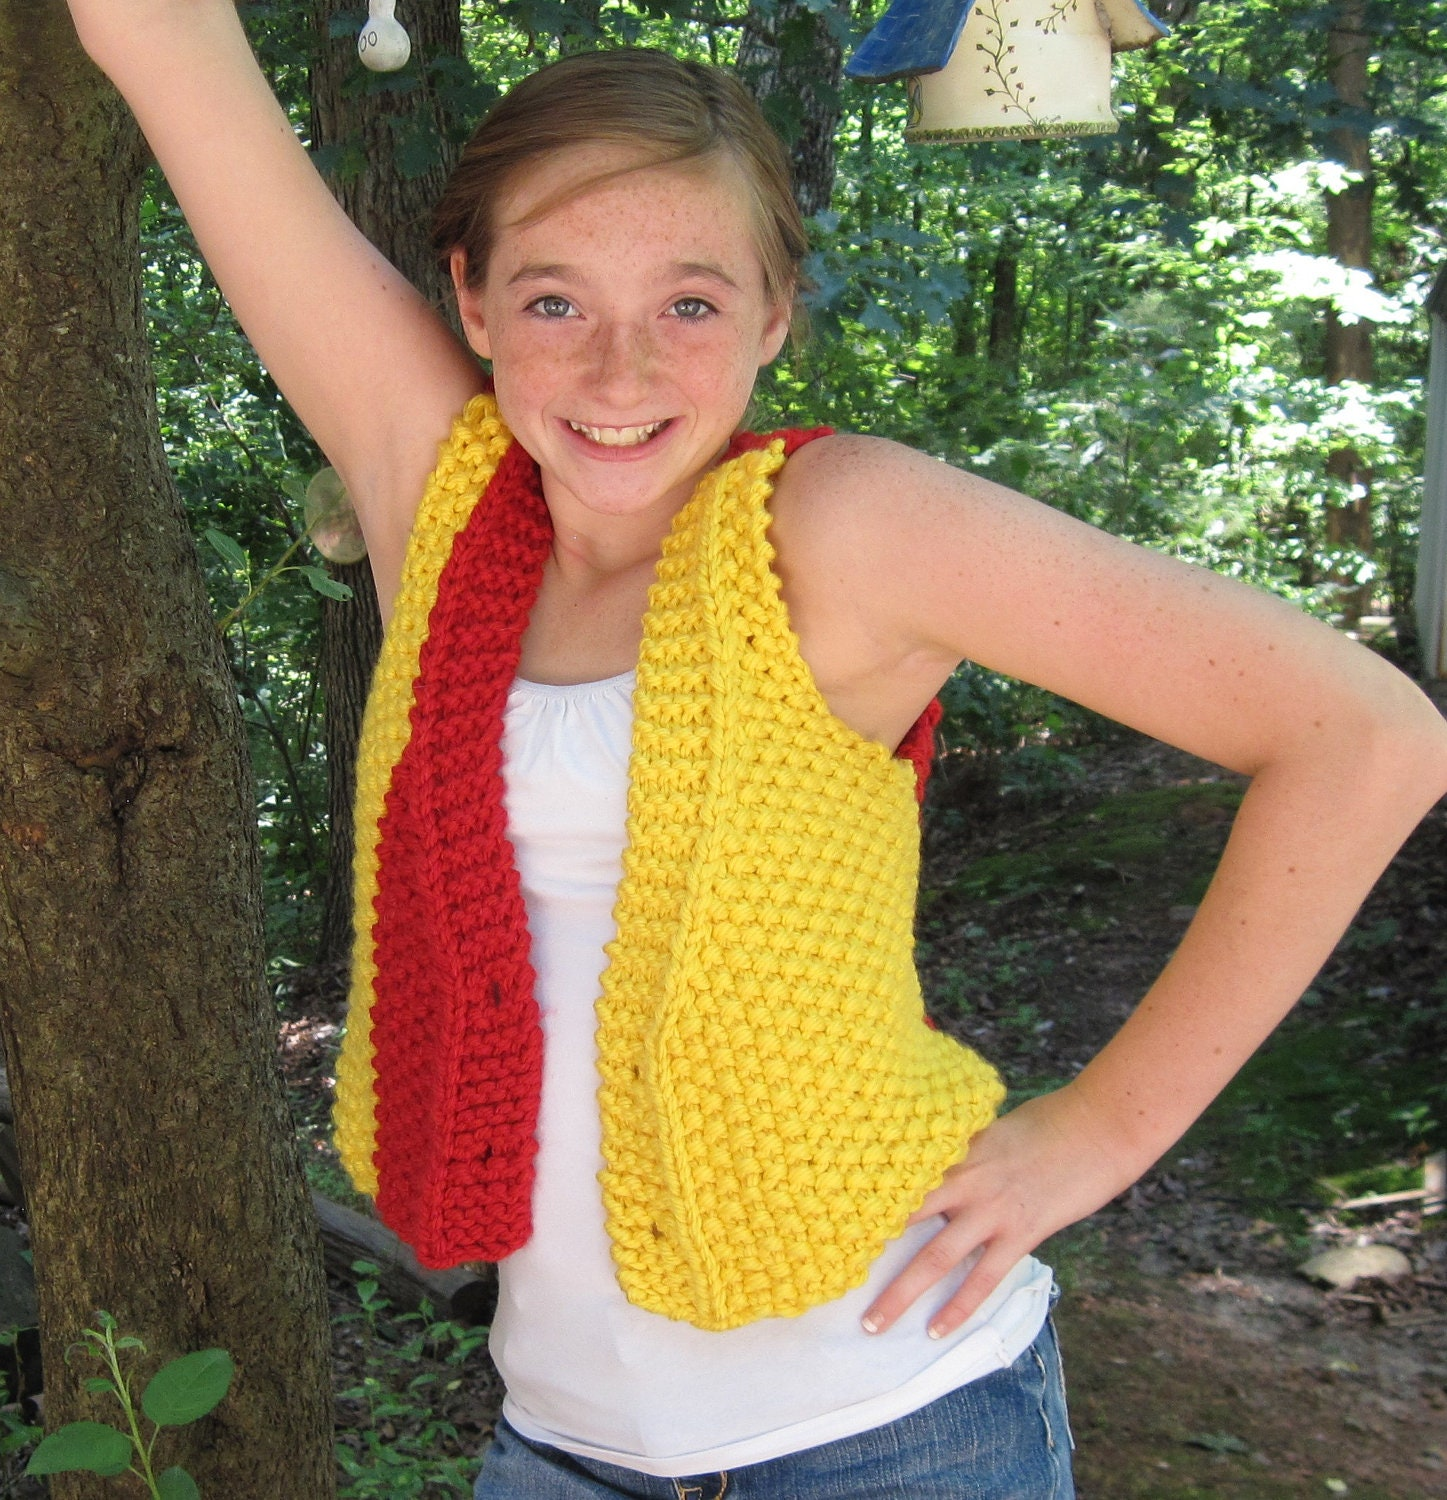 Knitting Pattern Vest Bulky Yarn : The Adjustable Childs Vest Bulky Yarn Knitting Pattern